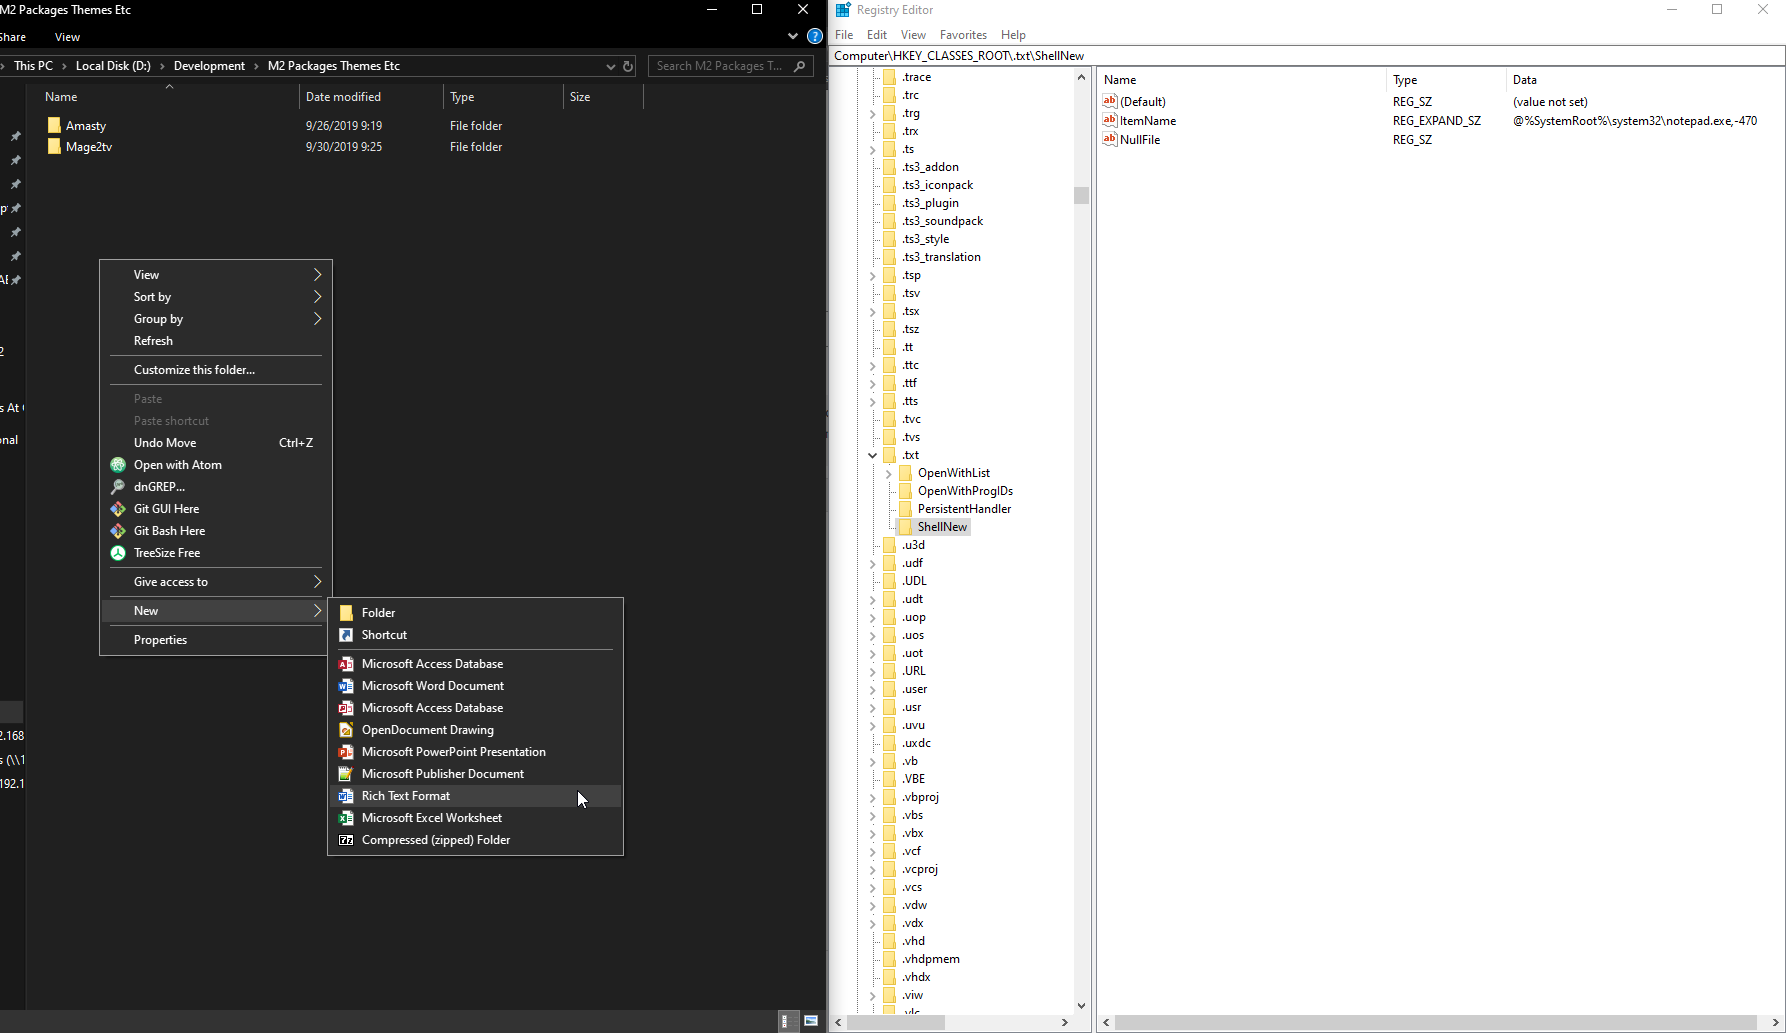 """""""Text File"""" missing from explorer right click context 46a65df7-a817-472e-8e50-3c6ab2b3d921?upload=true.png"""